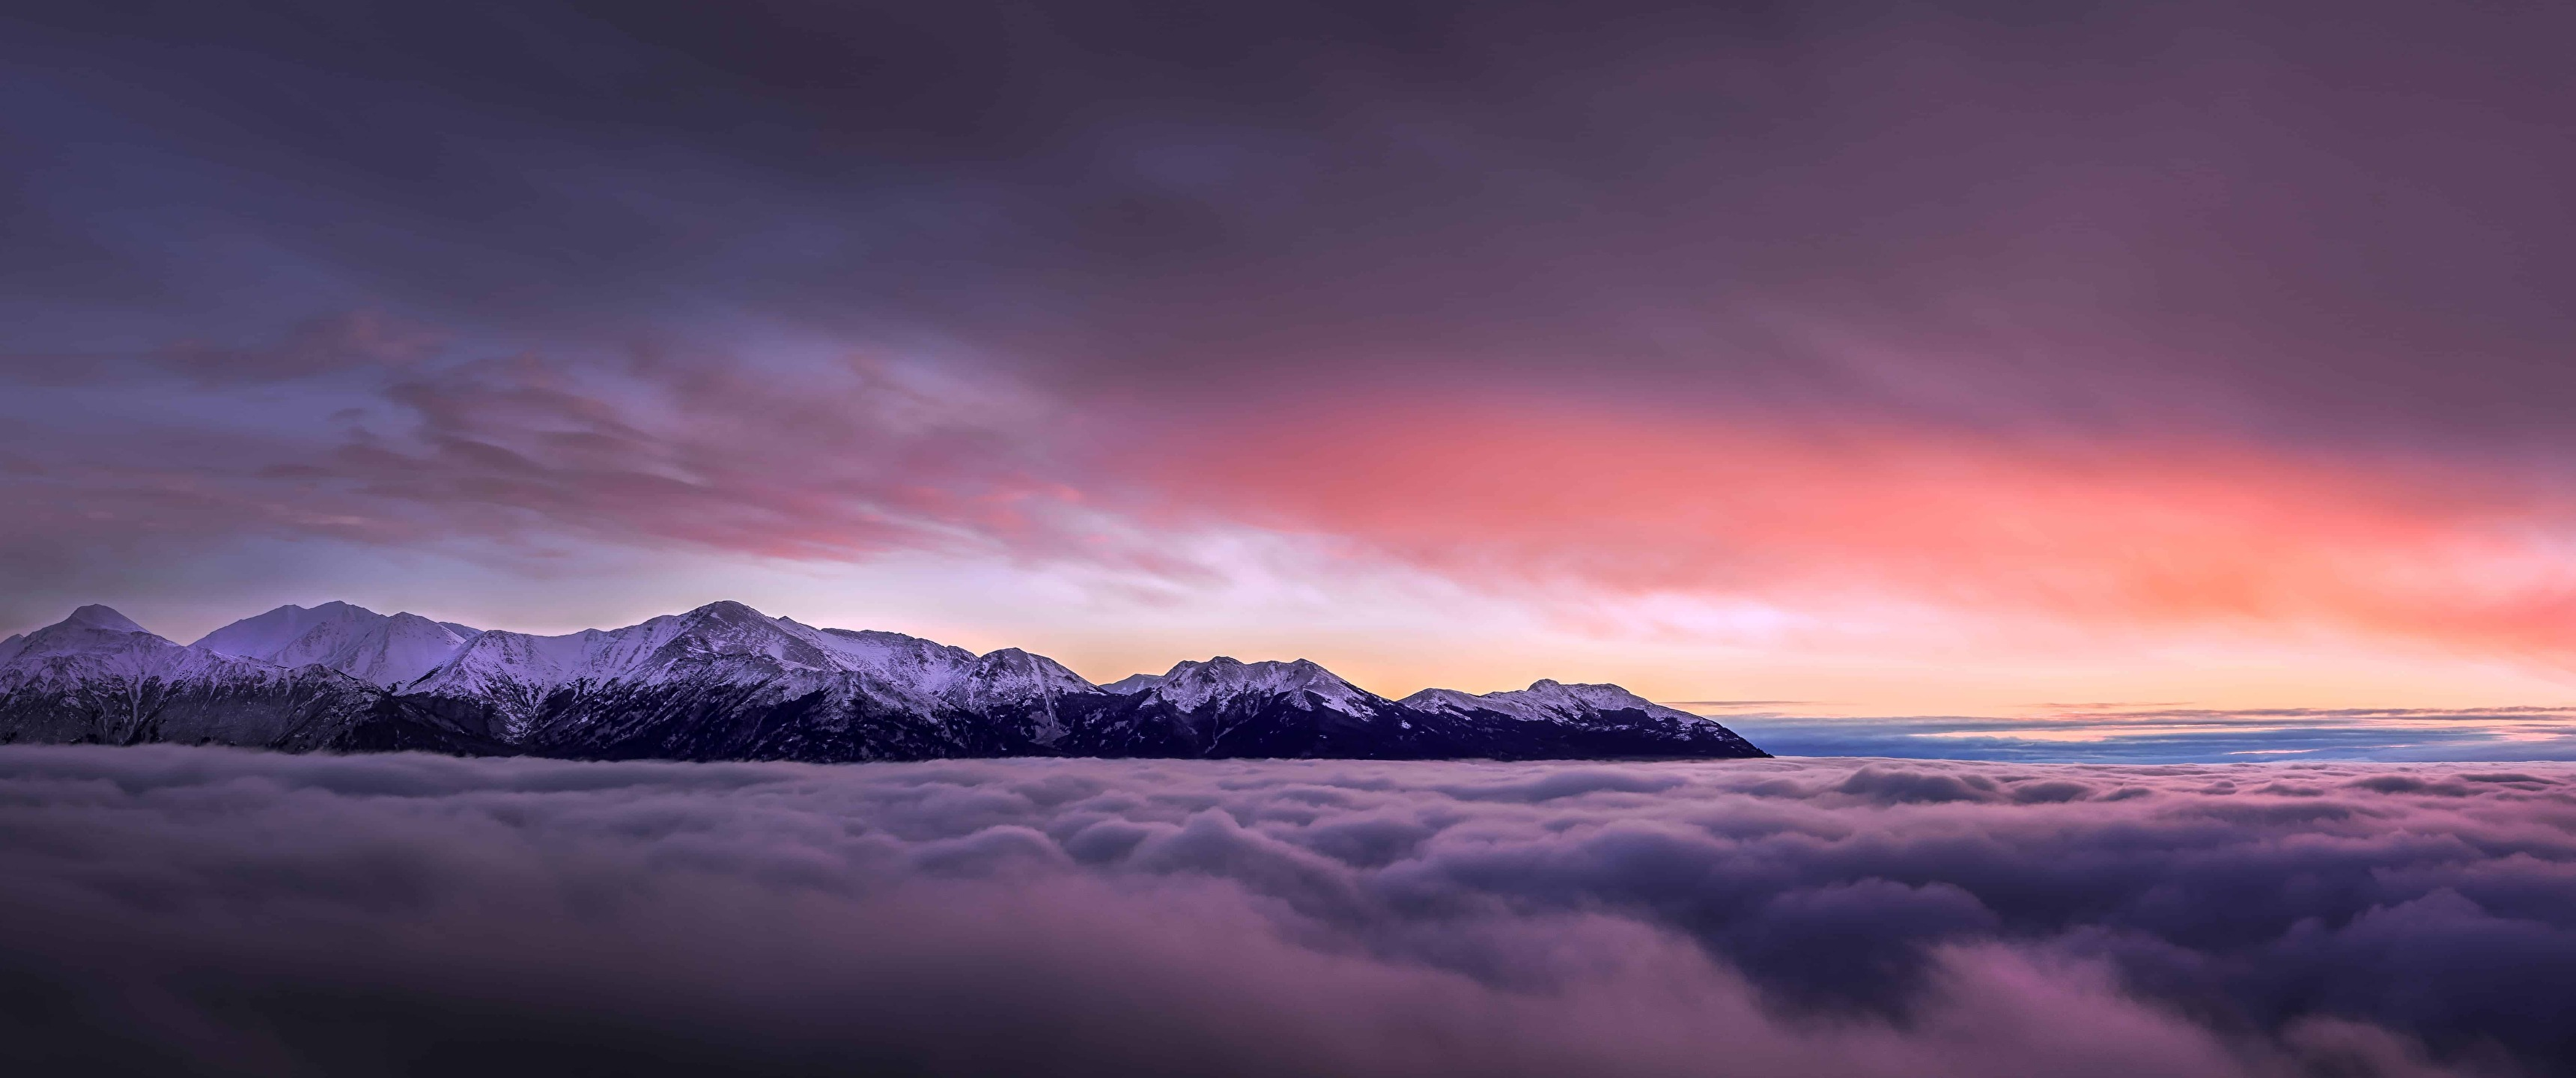 Sunset With Mountains Above Clouds Wallpapers